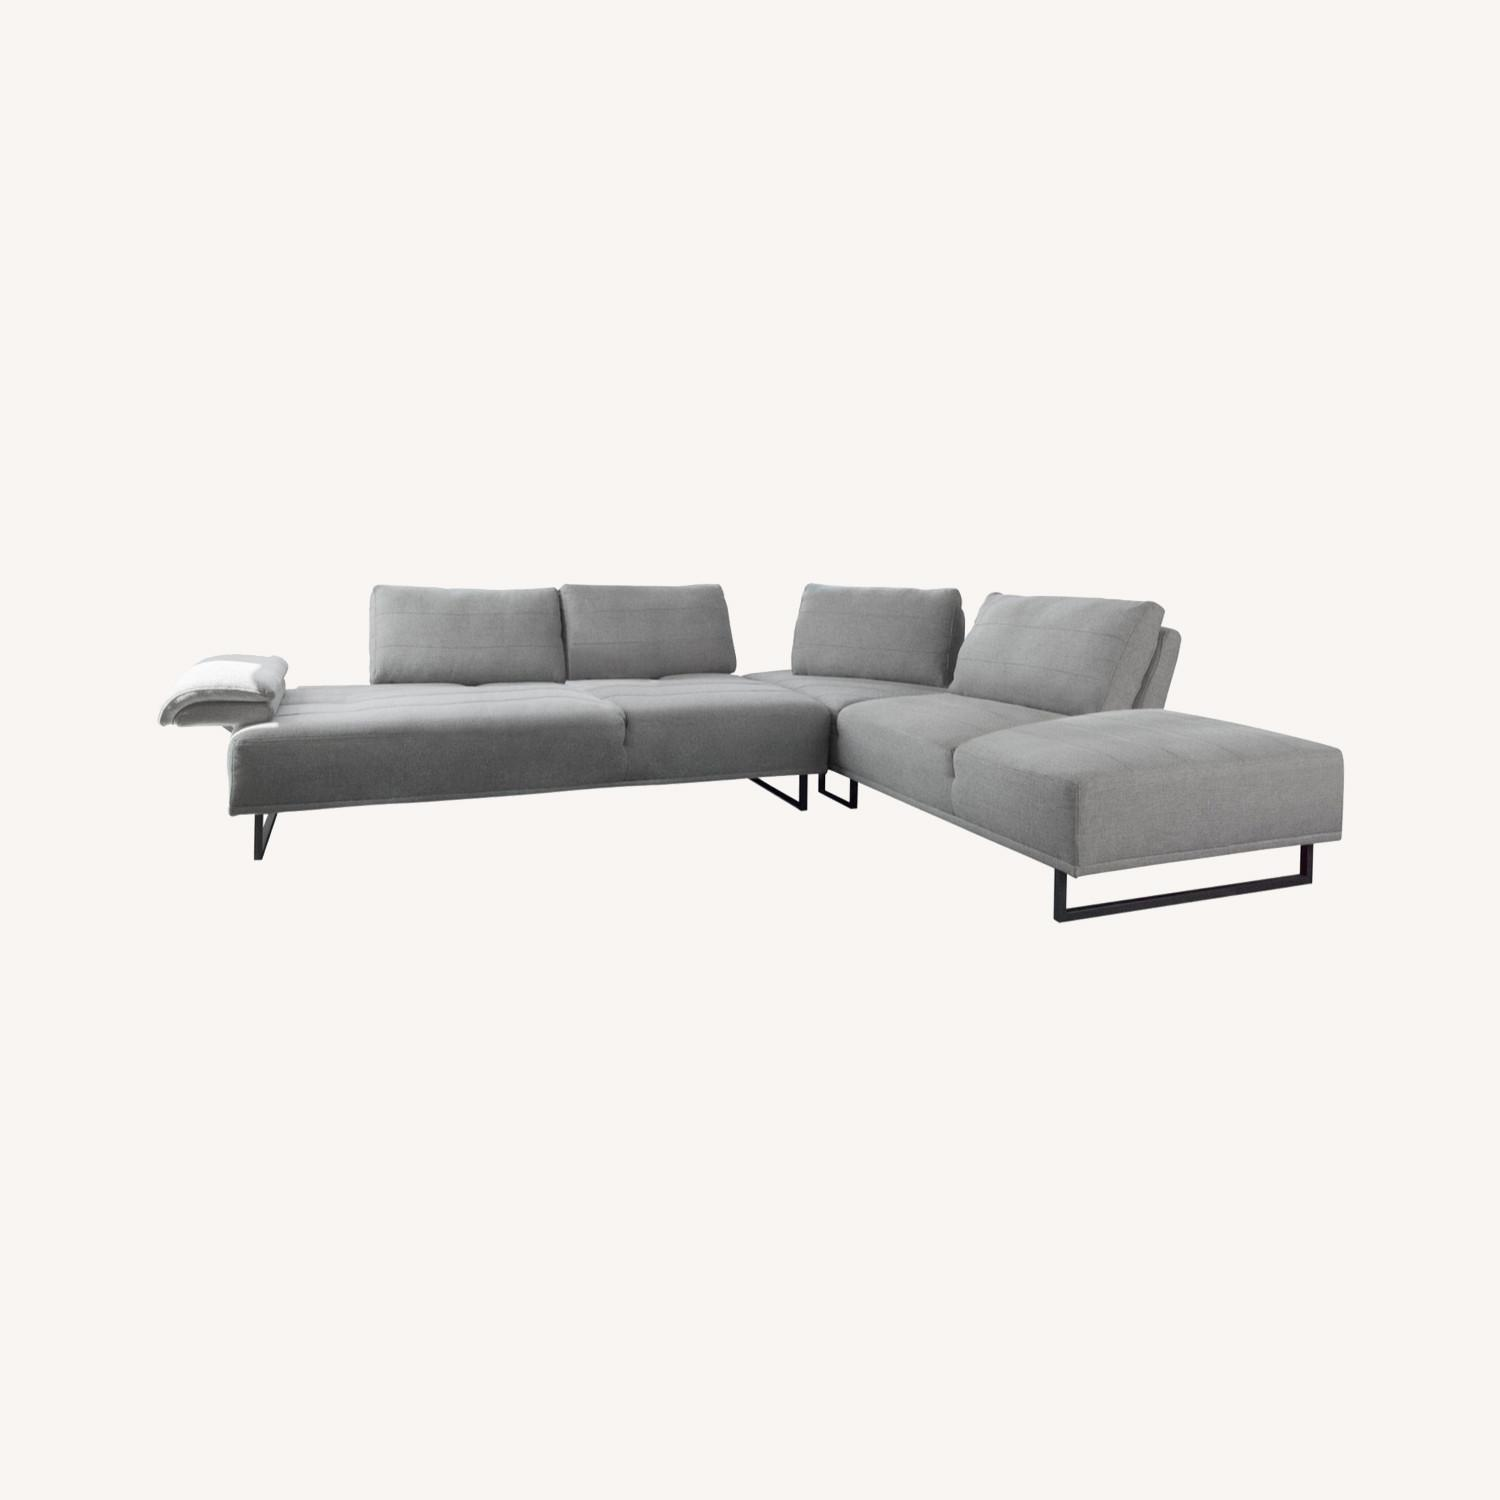 Sectional In Taupe Woven Fabric Upholstery - image-4